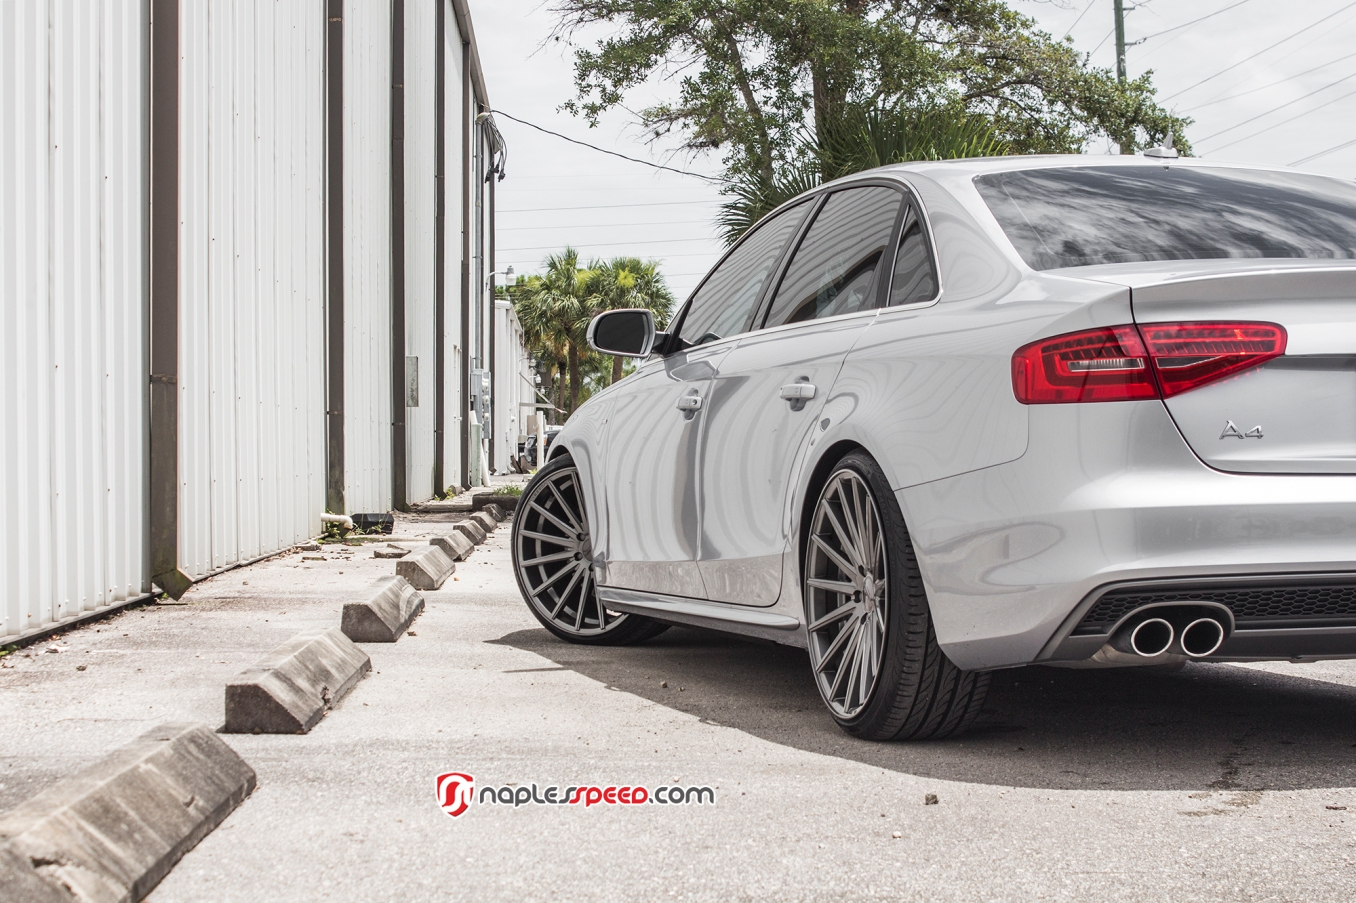 Audi A4, Naples Speed, Naples FL, Vossen wheels, VFS2 20inch, Performance, Modified, Vossen VFS2,